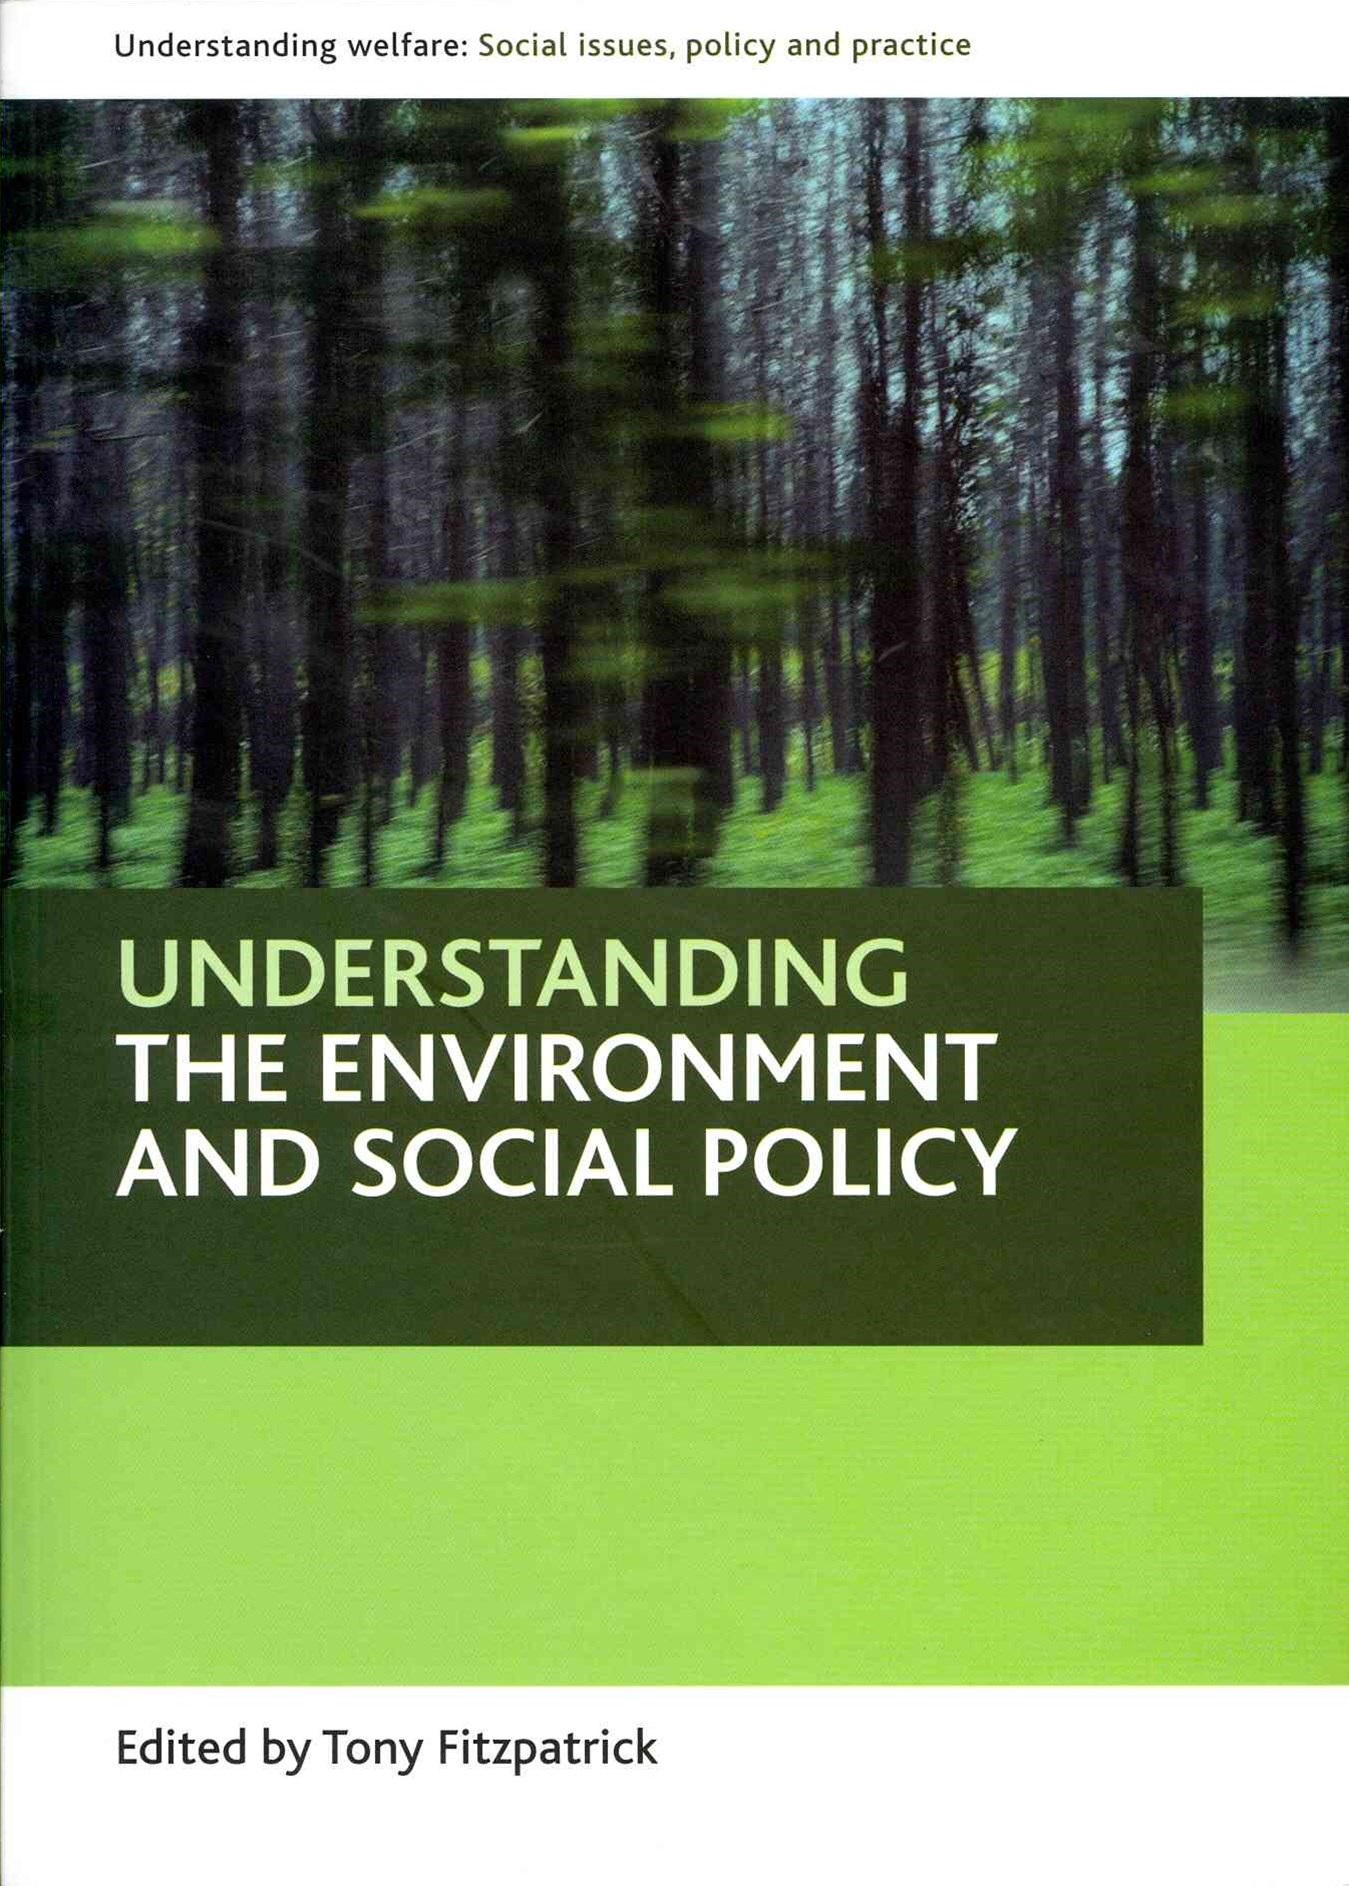 Understanding the environment and social policy